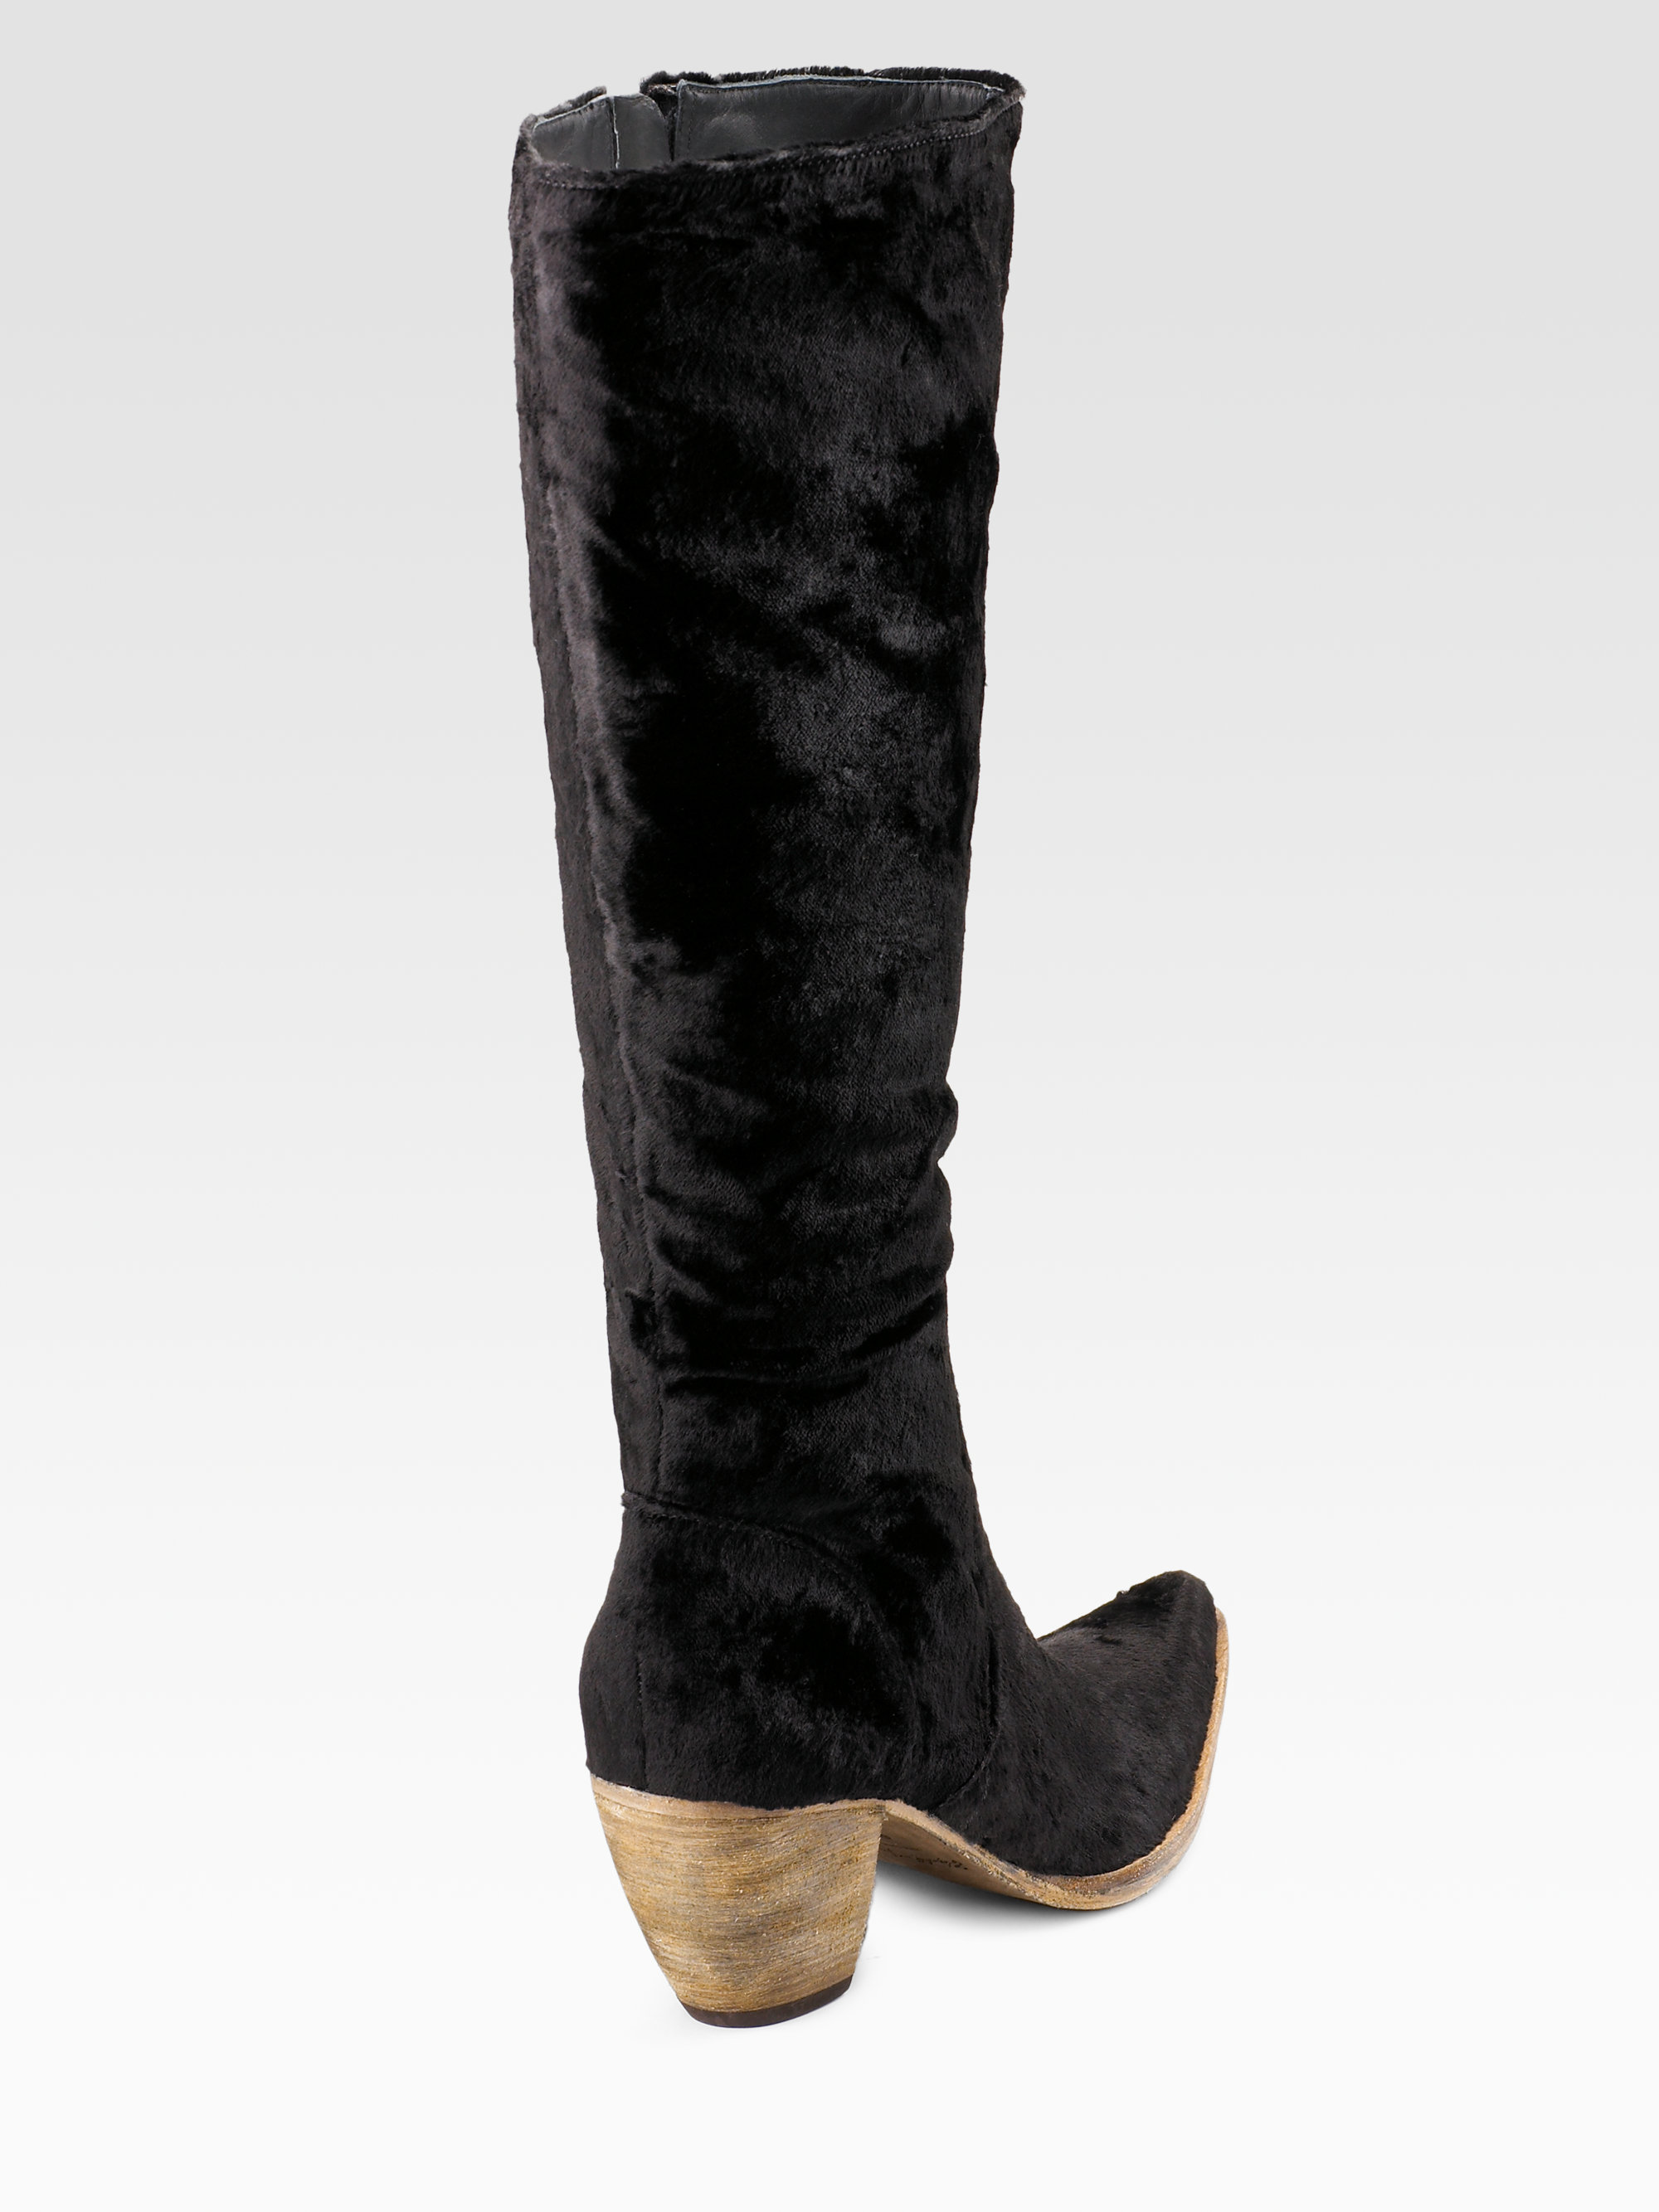 Elizabeth and james Velvet Western Tall Boots in Black | Lyst